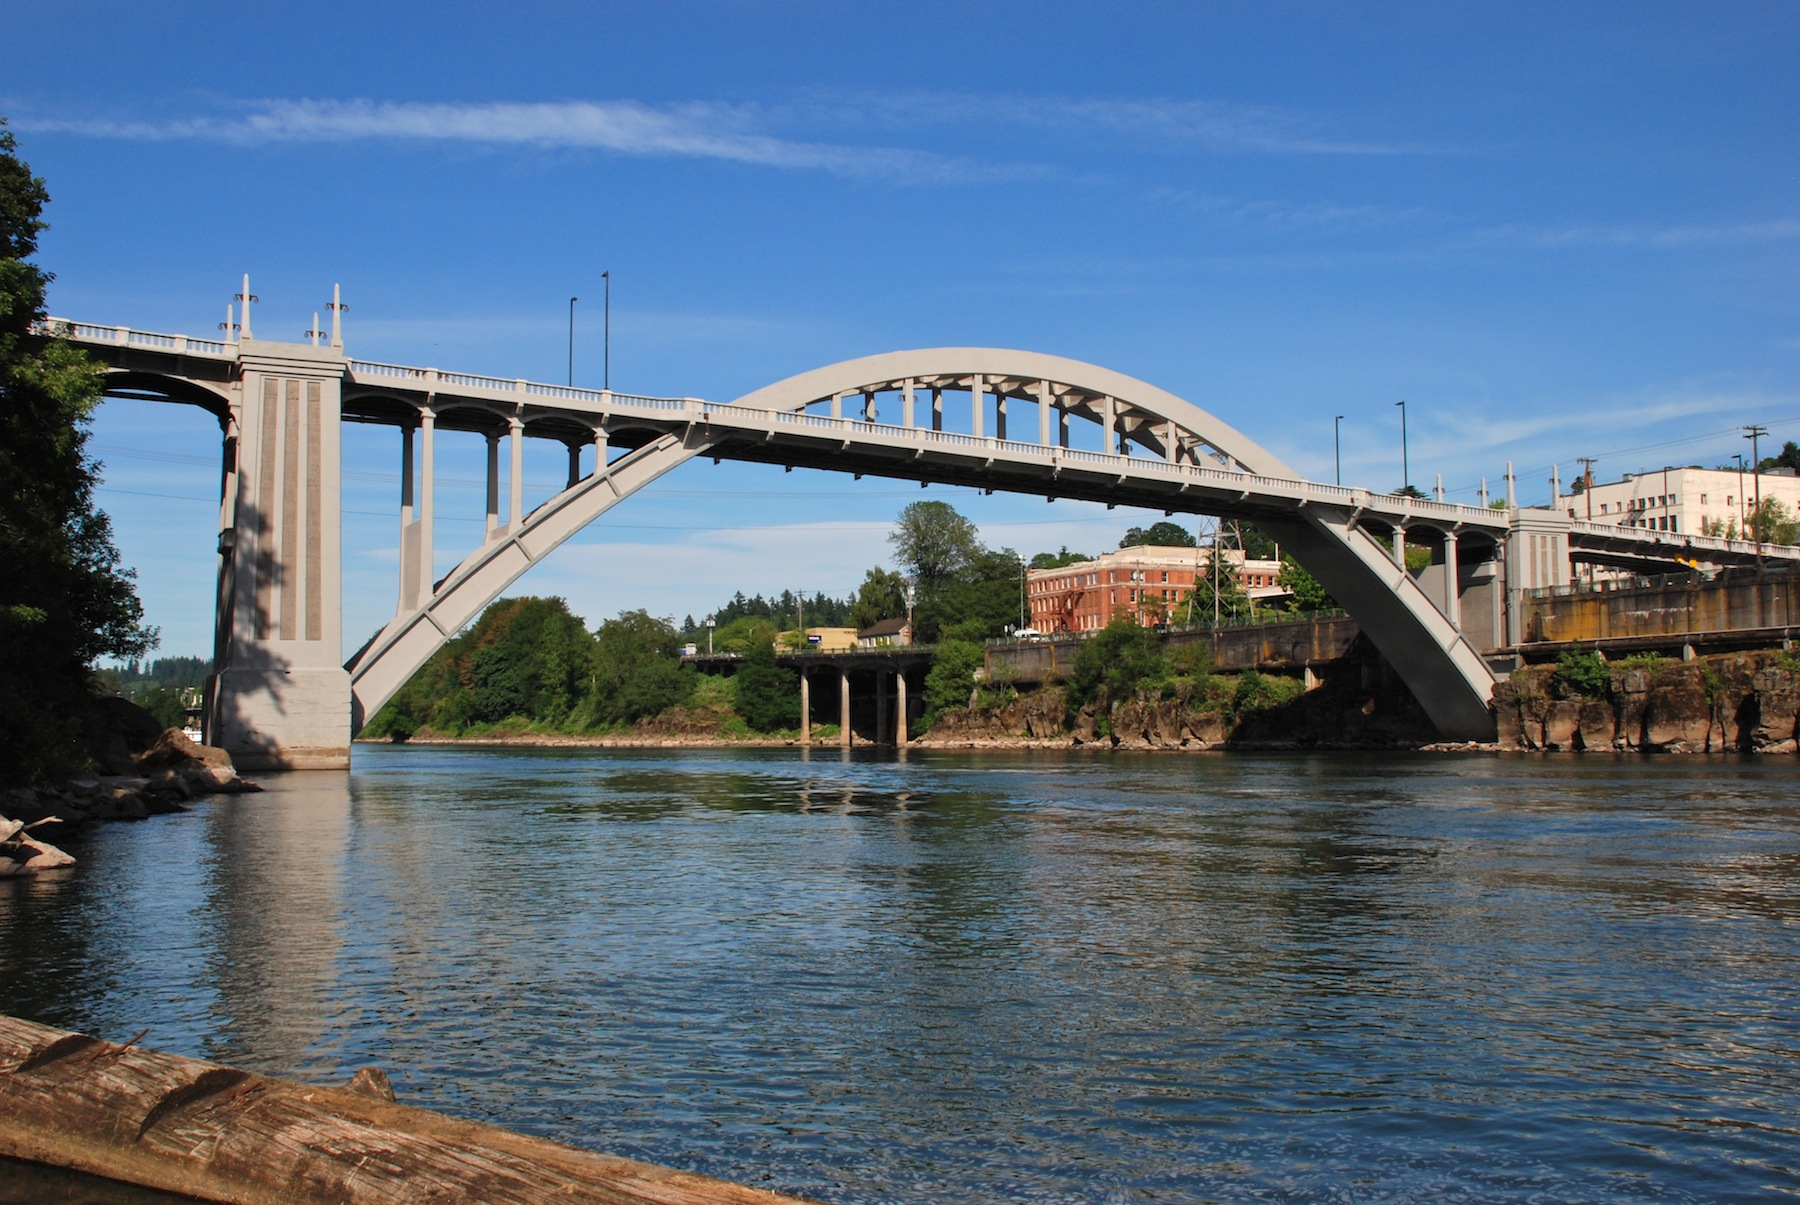 oregon city bridge wikipedia